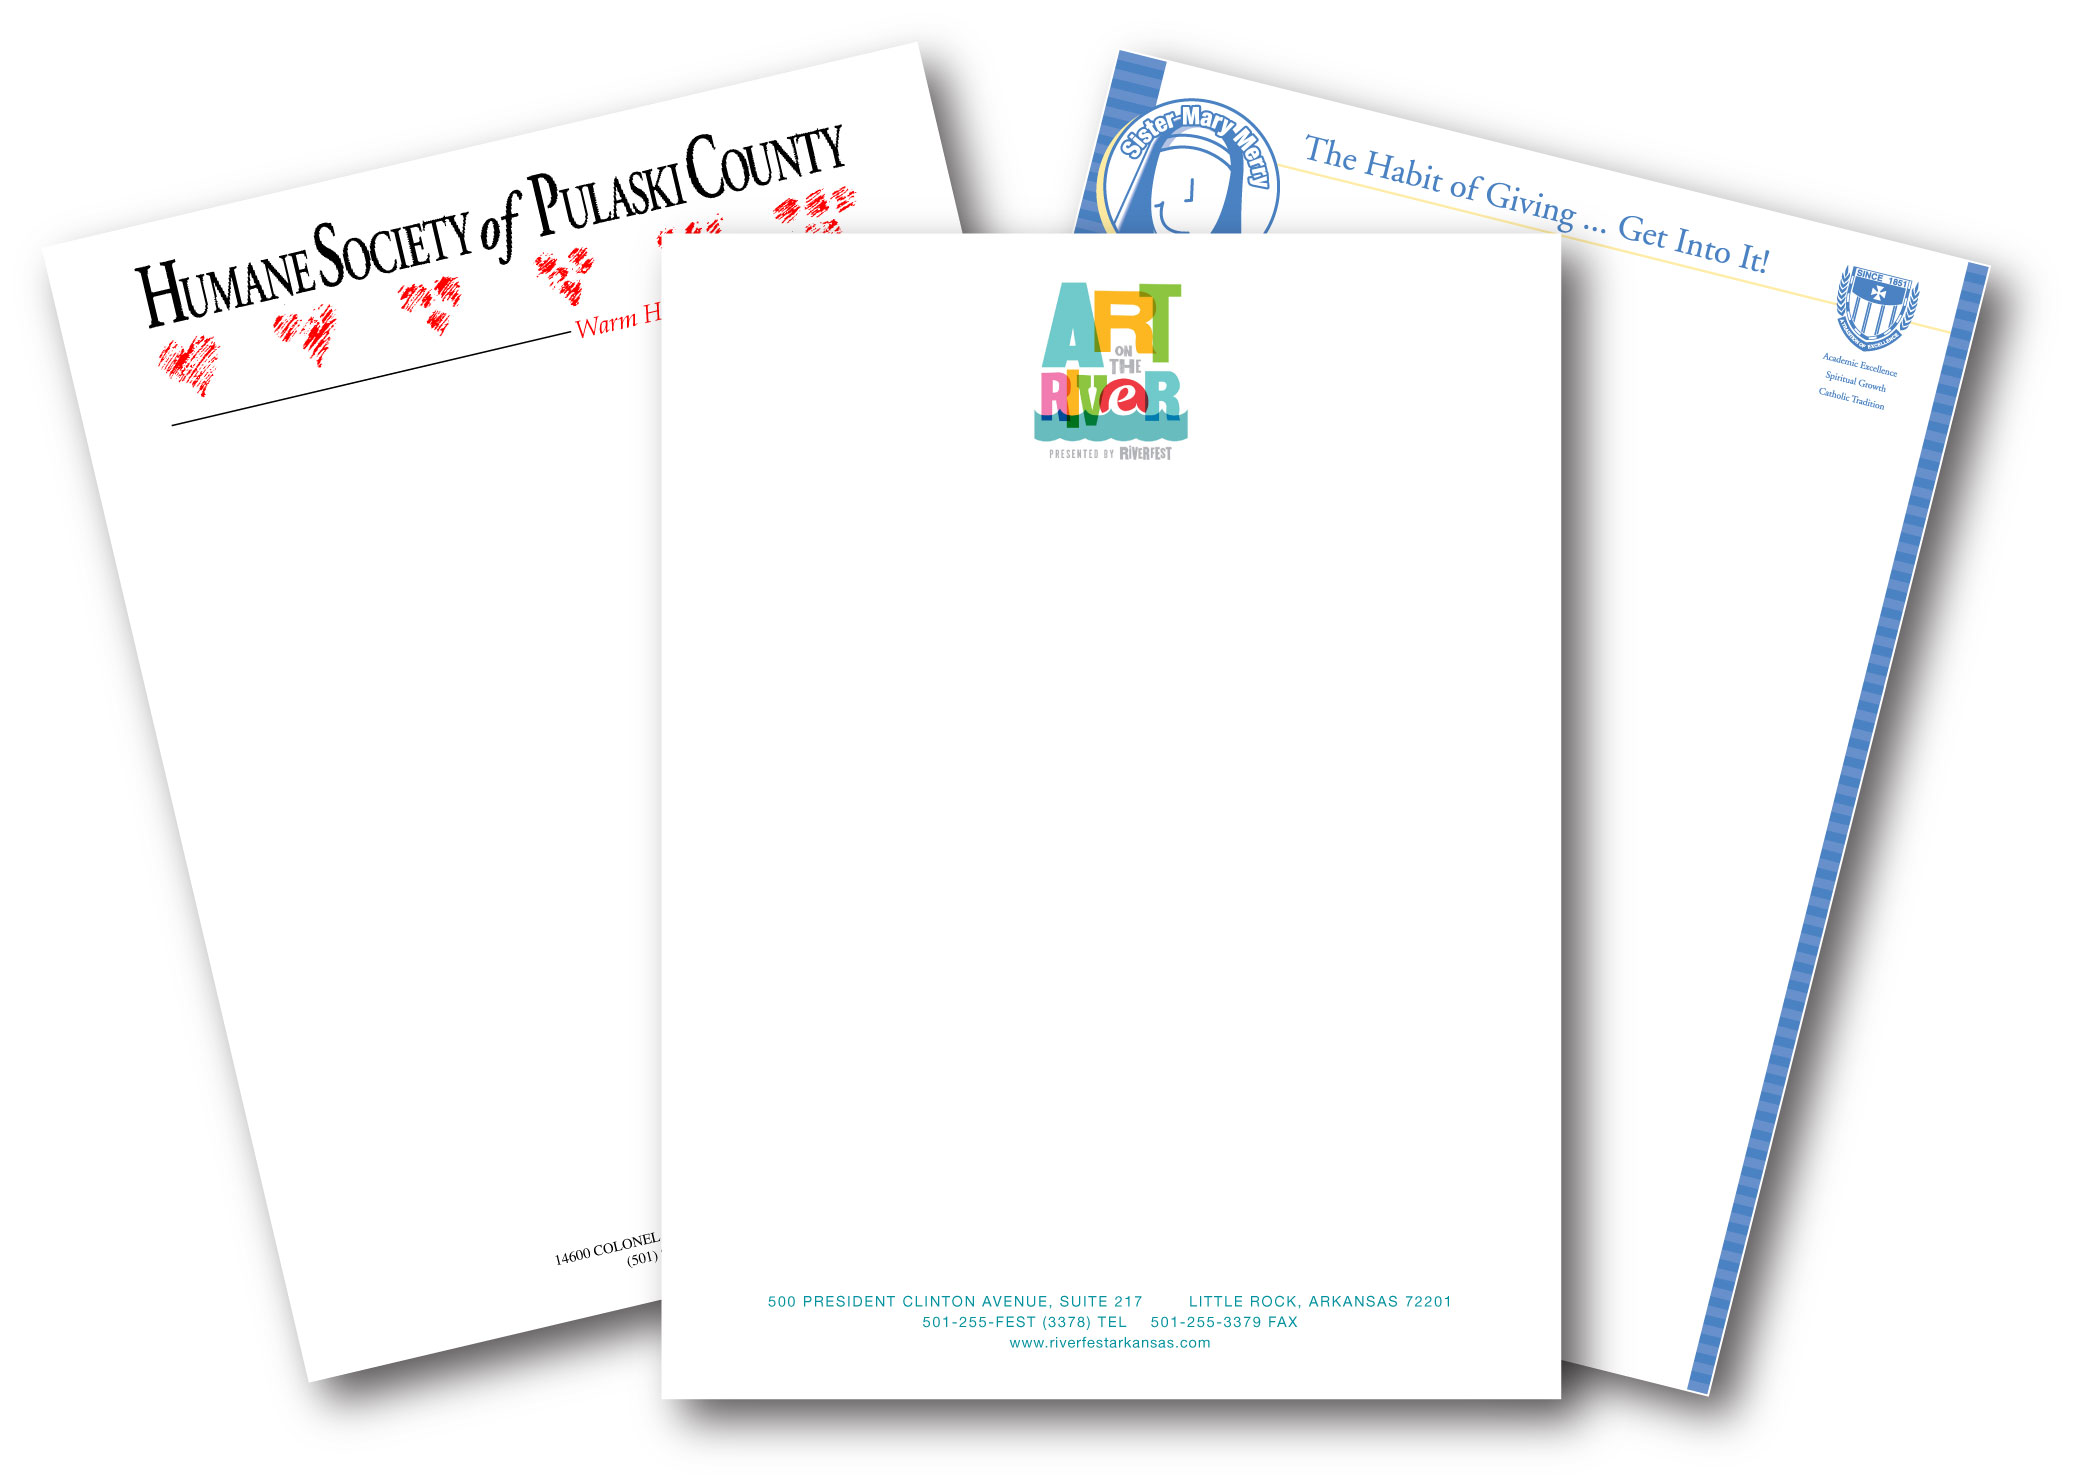 Cheap letterhead printing uk letter headed paper beeprinting letterheads uk thecheapjerseys Gallery